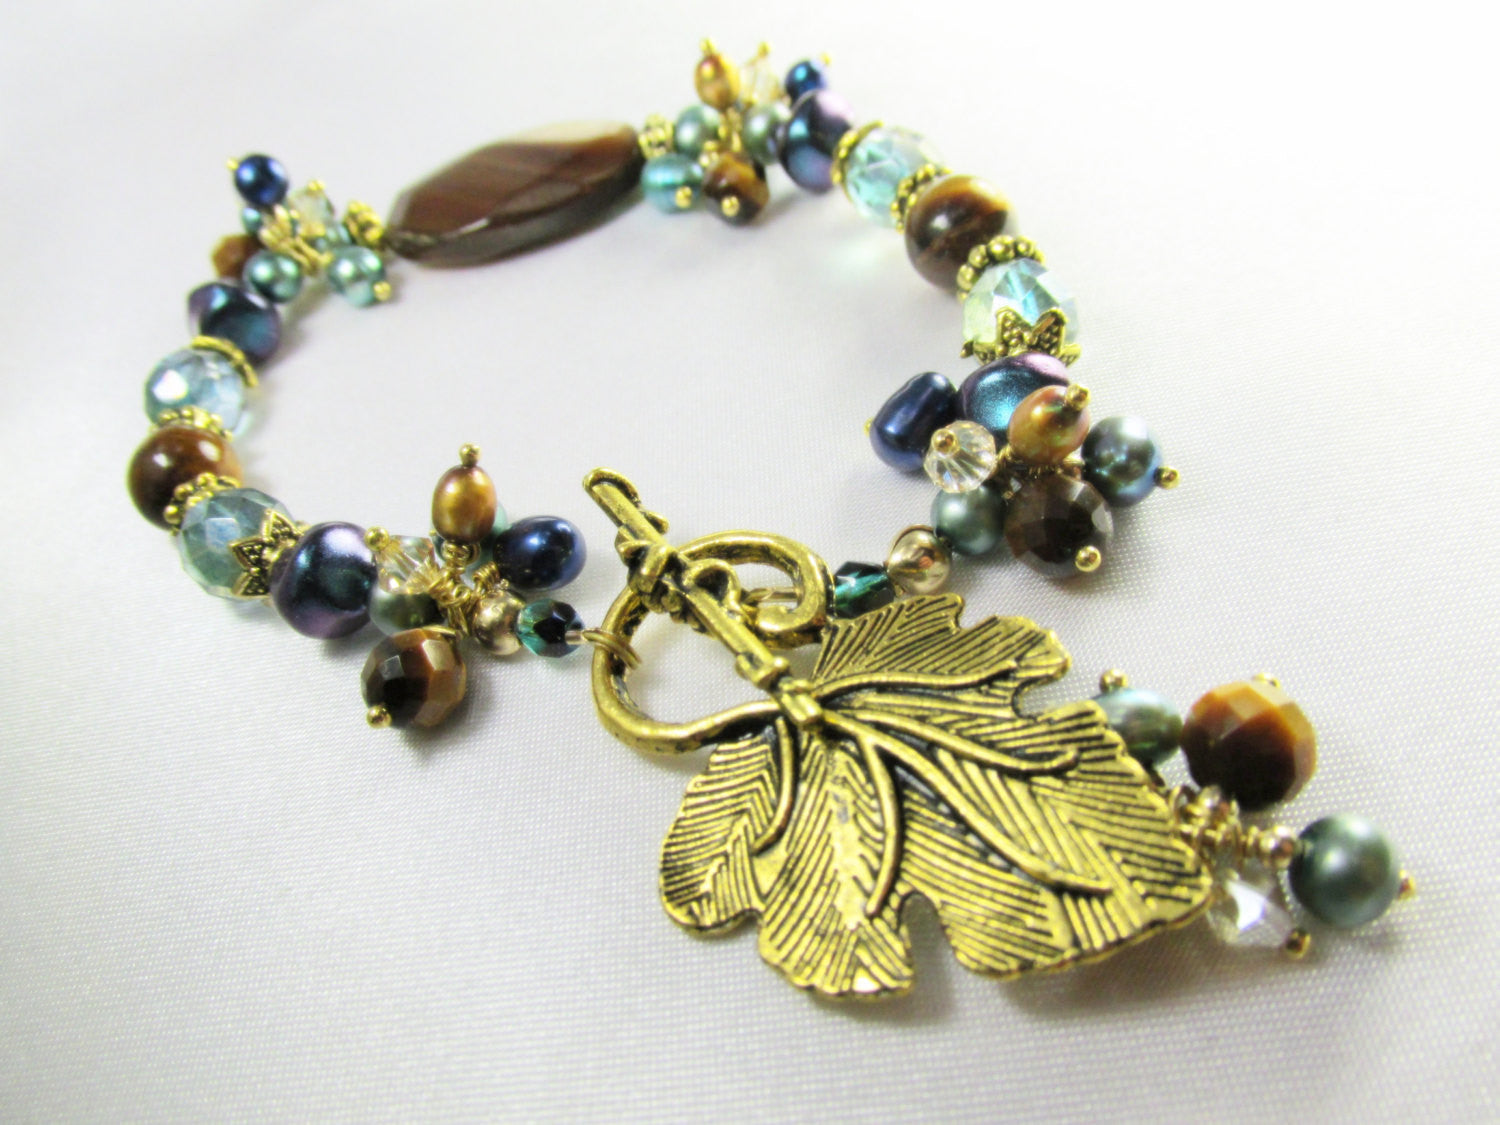 Peacock Freshwater Pearls in Aqua, Teal Blue and Gold with Brown Tigers Eye, Czech Glass - Odyssey Creations